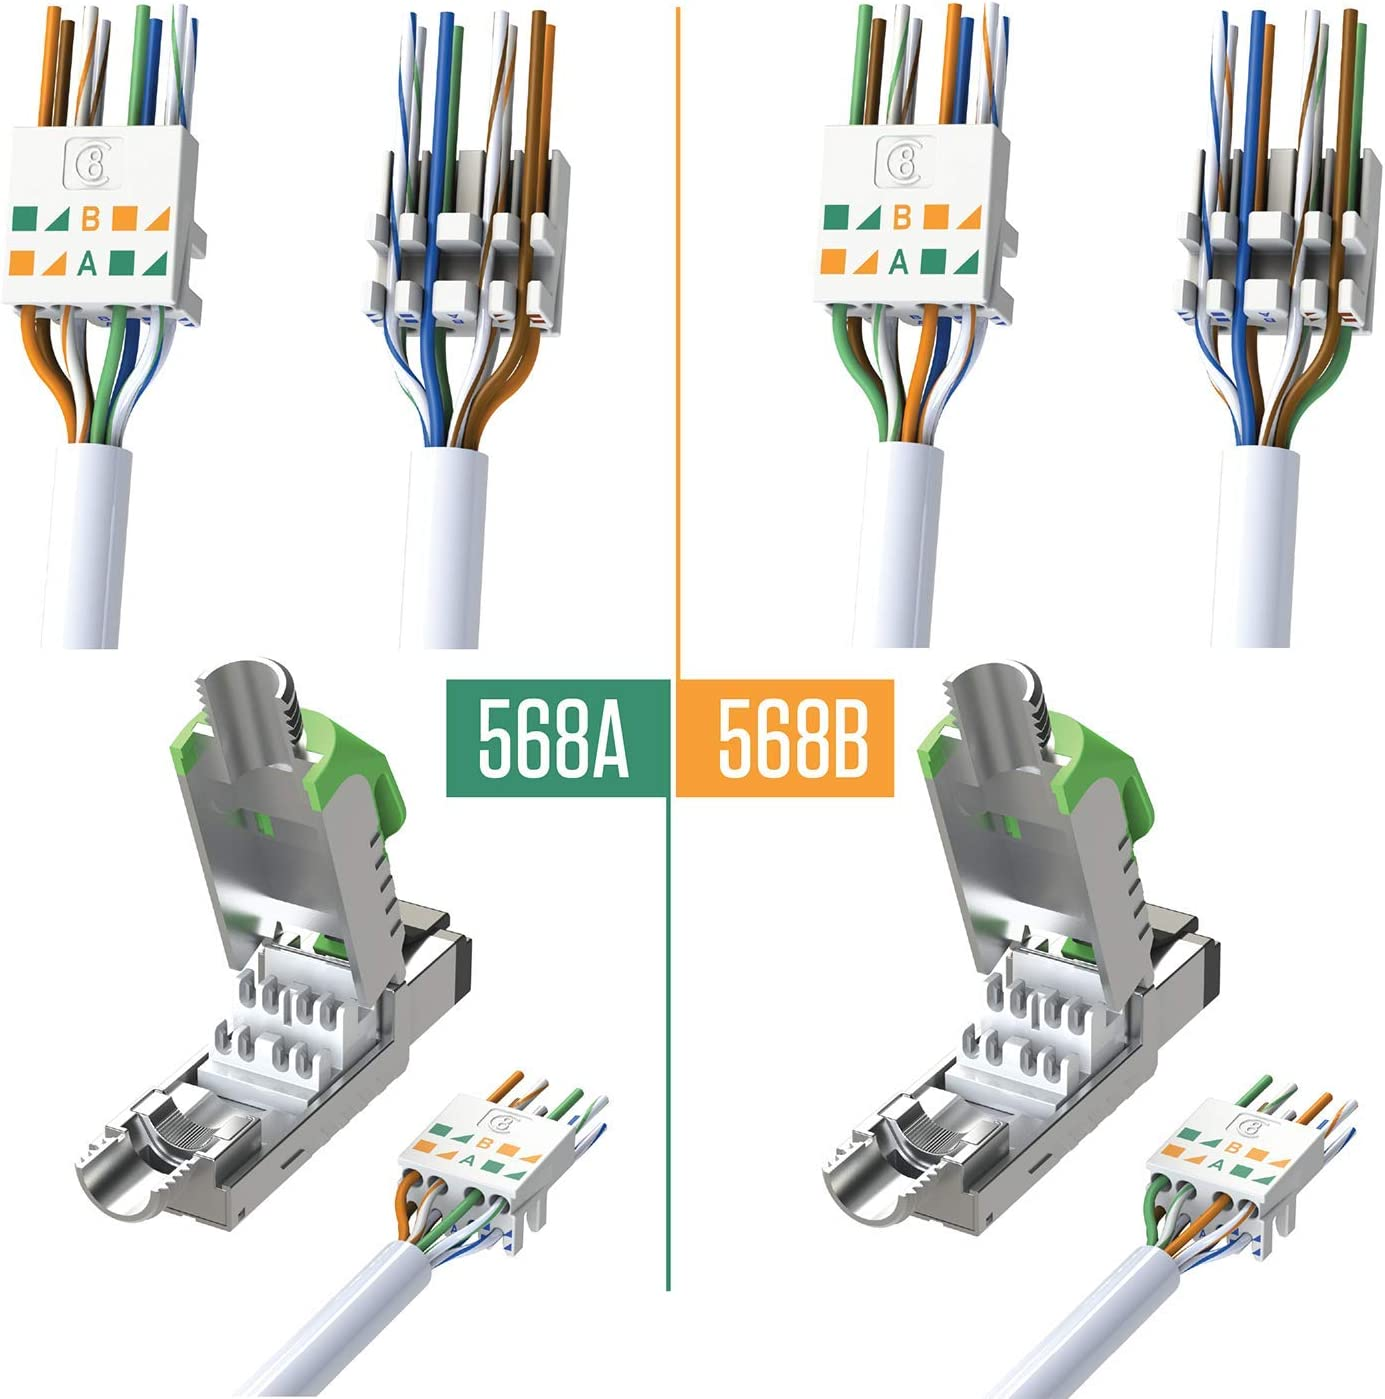 2Ghz 100 Meter Bulk Future 5th-Gen Ethernet LAN Network 40G Structure Wires up to 40Gbps LINKUP Termination Required Cat8 Ethernet Cable S//FTP 22AWG Screened Solid Cable 2000Mhz